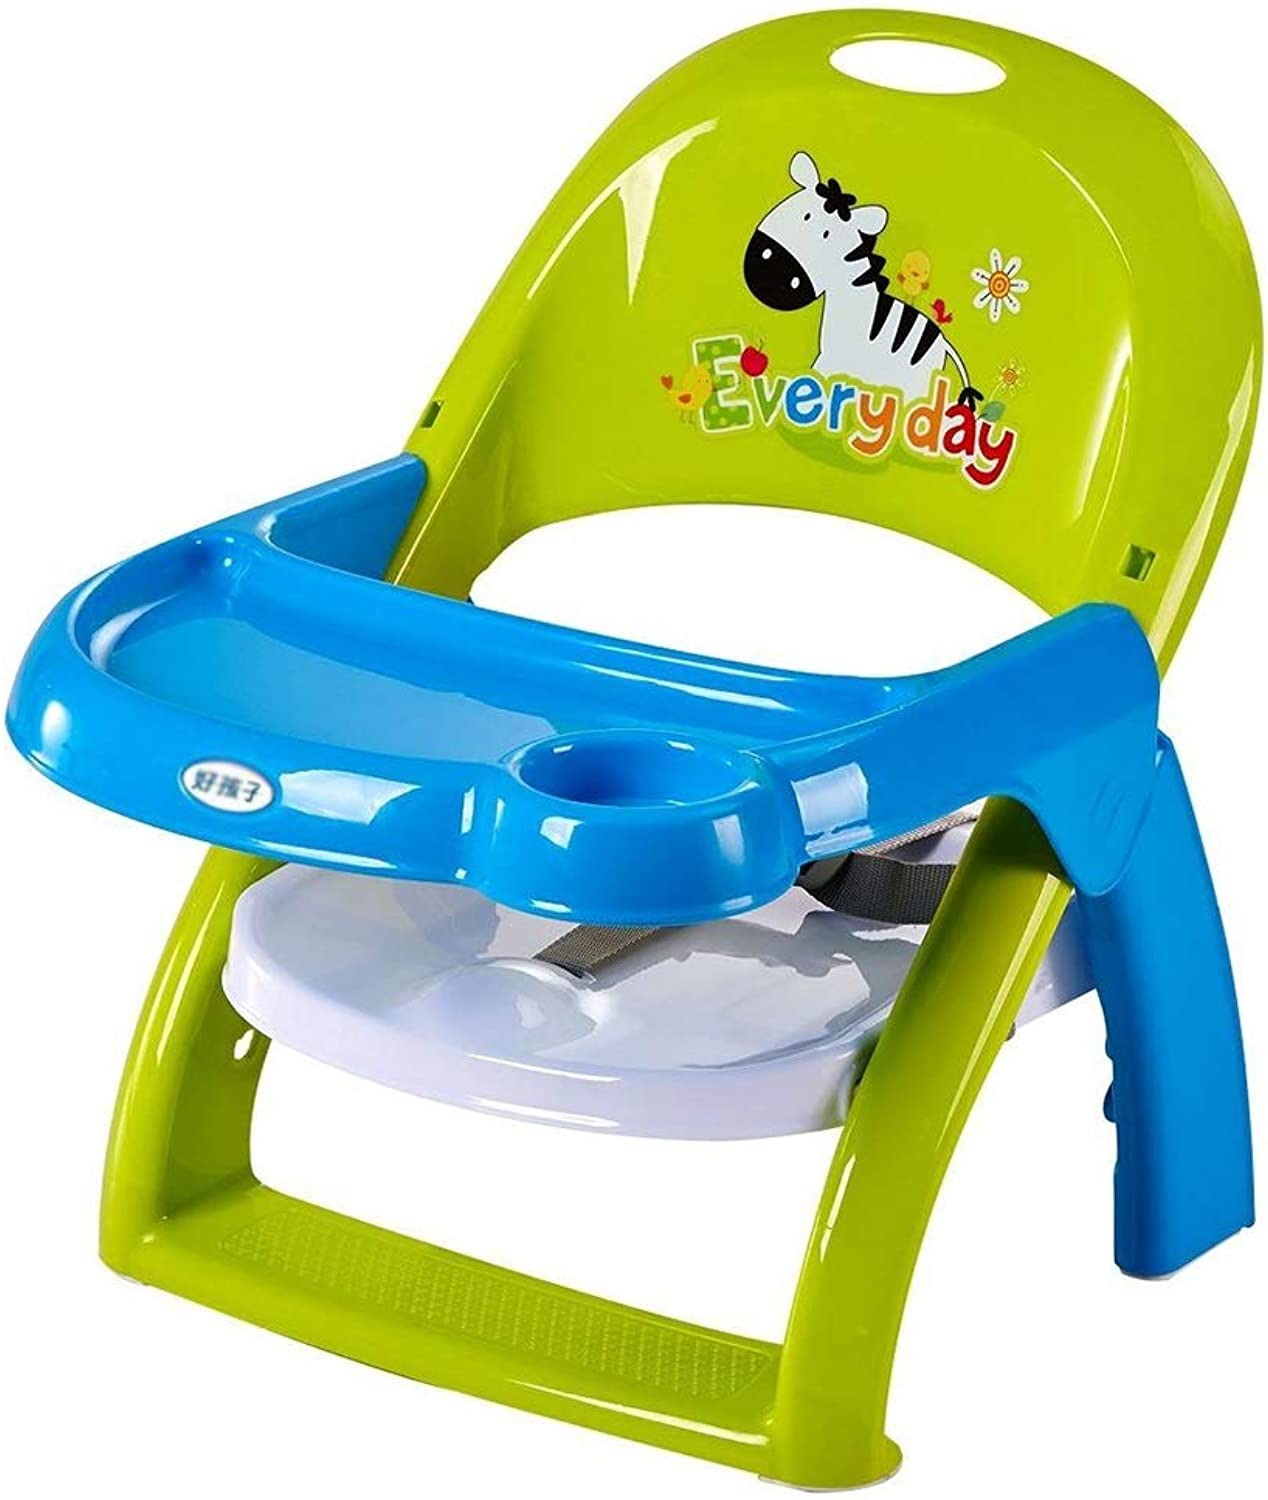 LXLA - Plastic Fold Booster Feeding Seat High Chair for Baby and Toddlers Dining